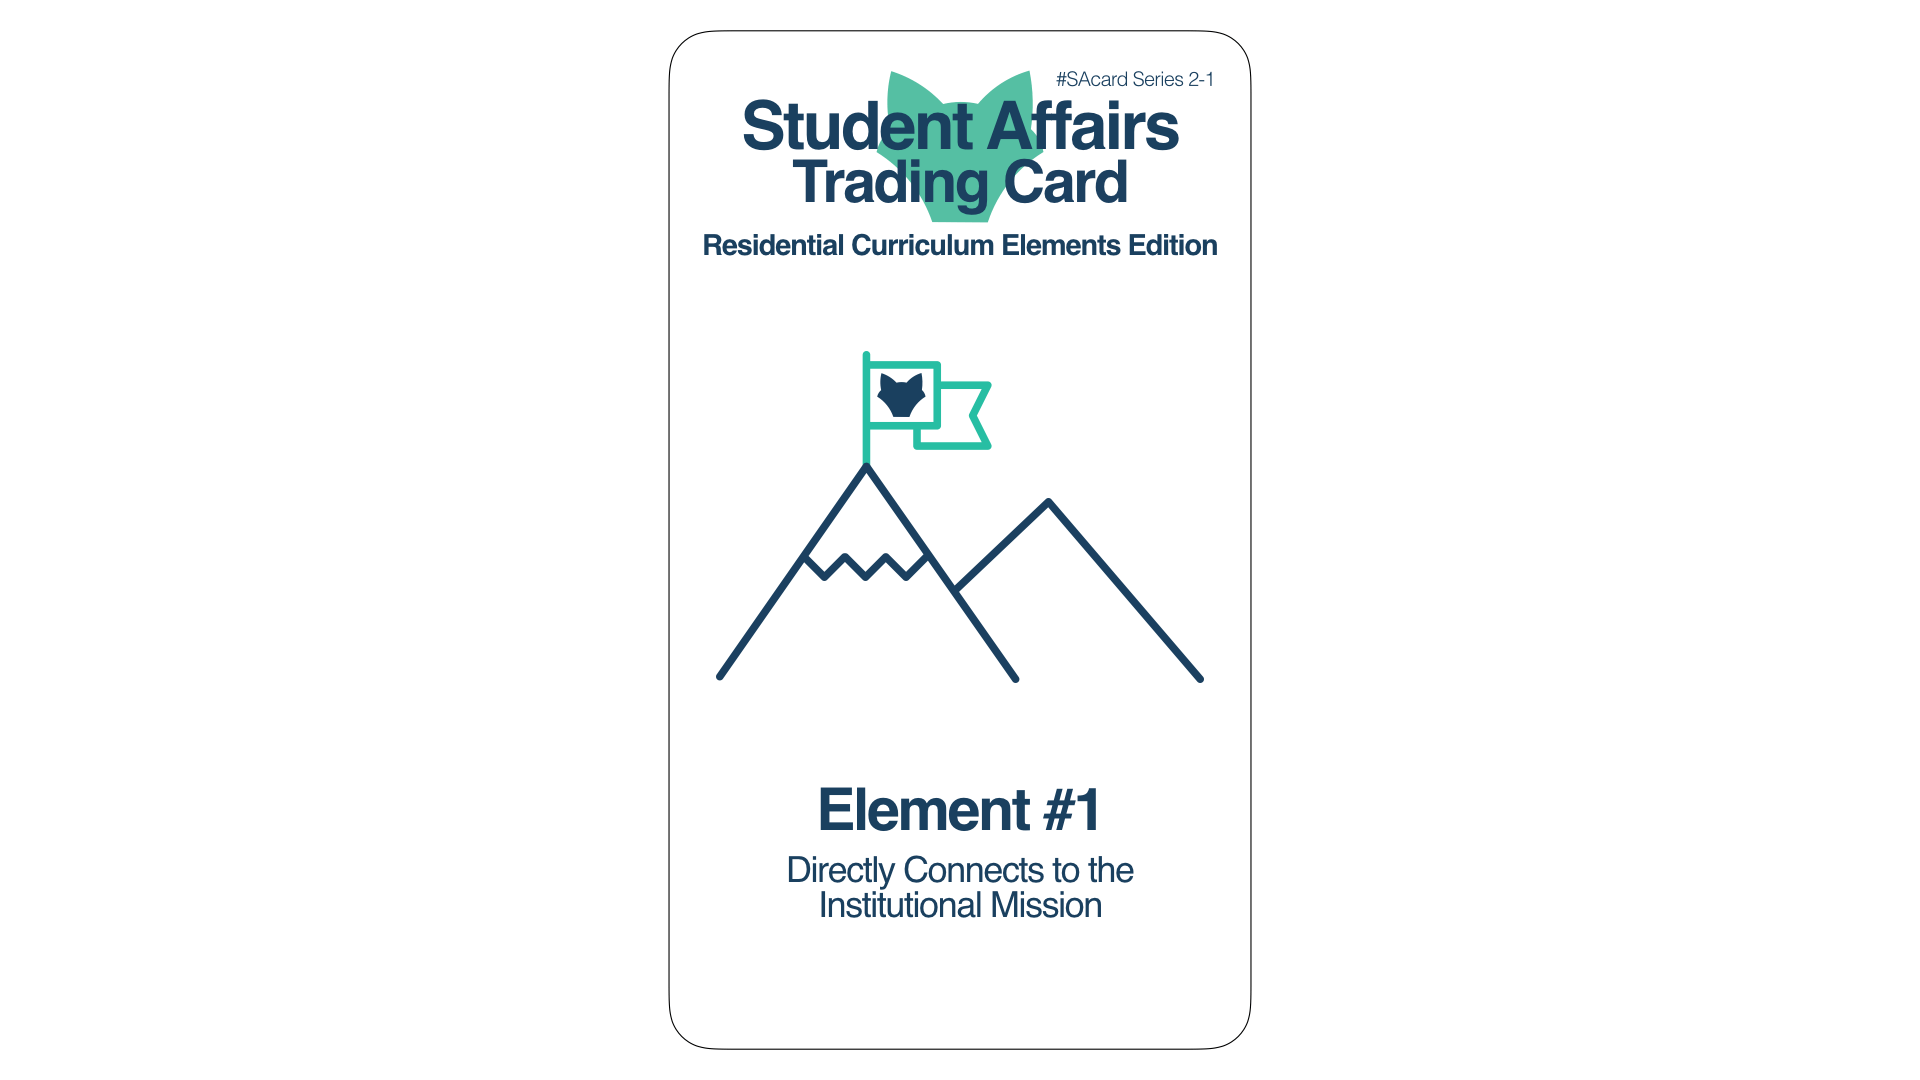 Student Affairs Trading Card 2-1: Residential Curriculum Element 1